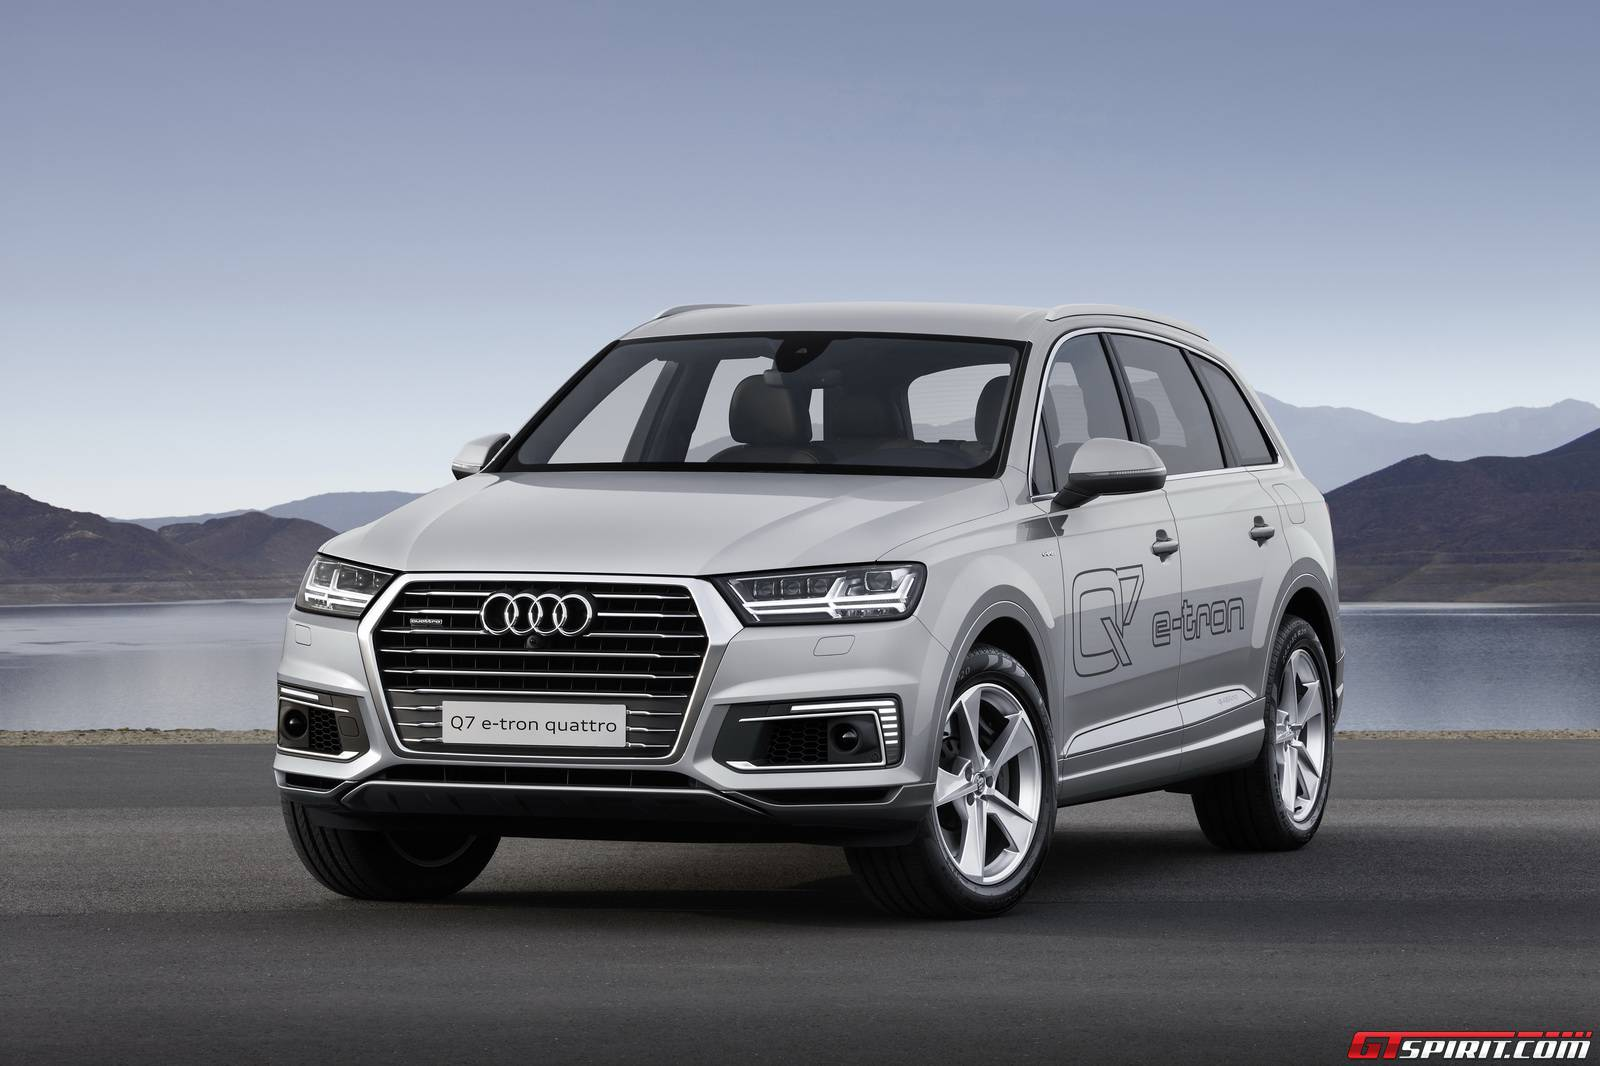 After the unveiling of the Audi Q7 e-tron diesel at the Geneva Motor ...